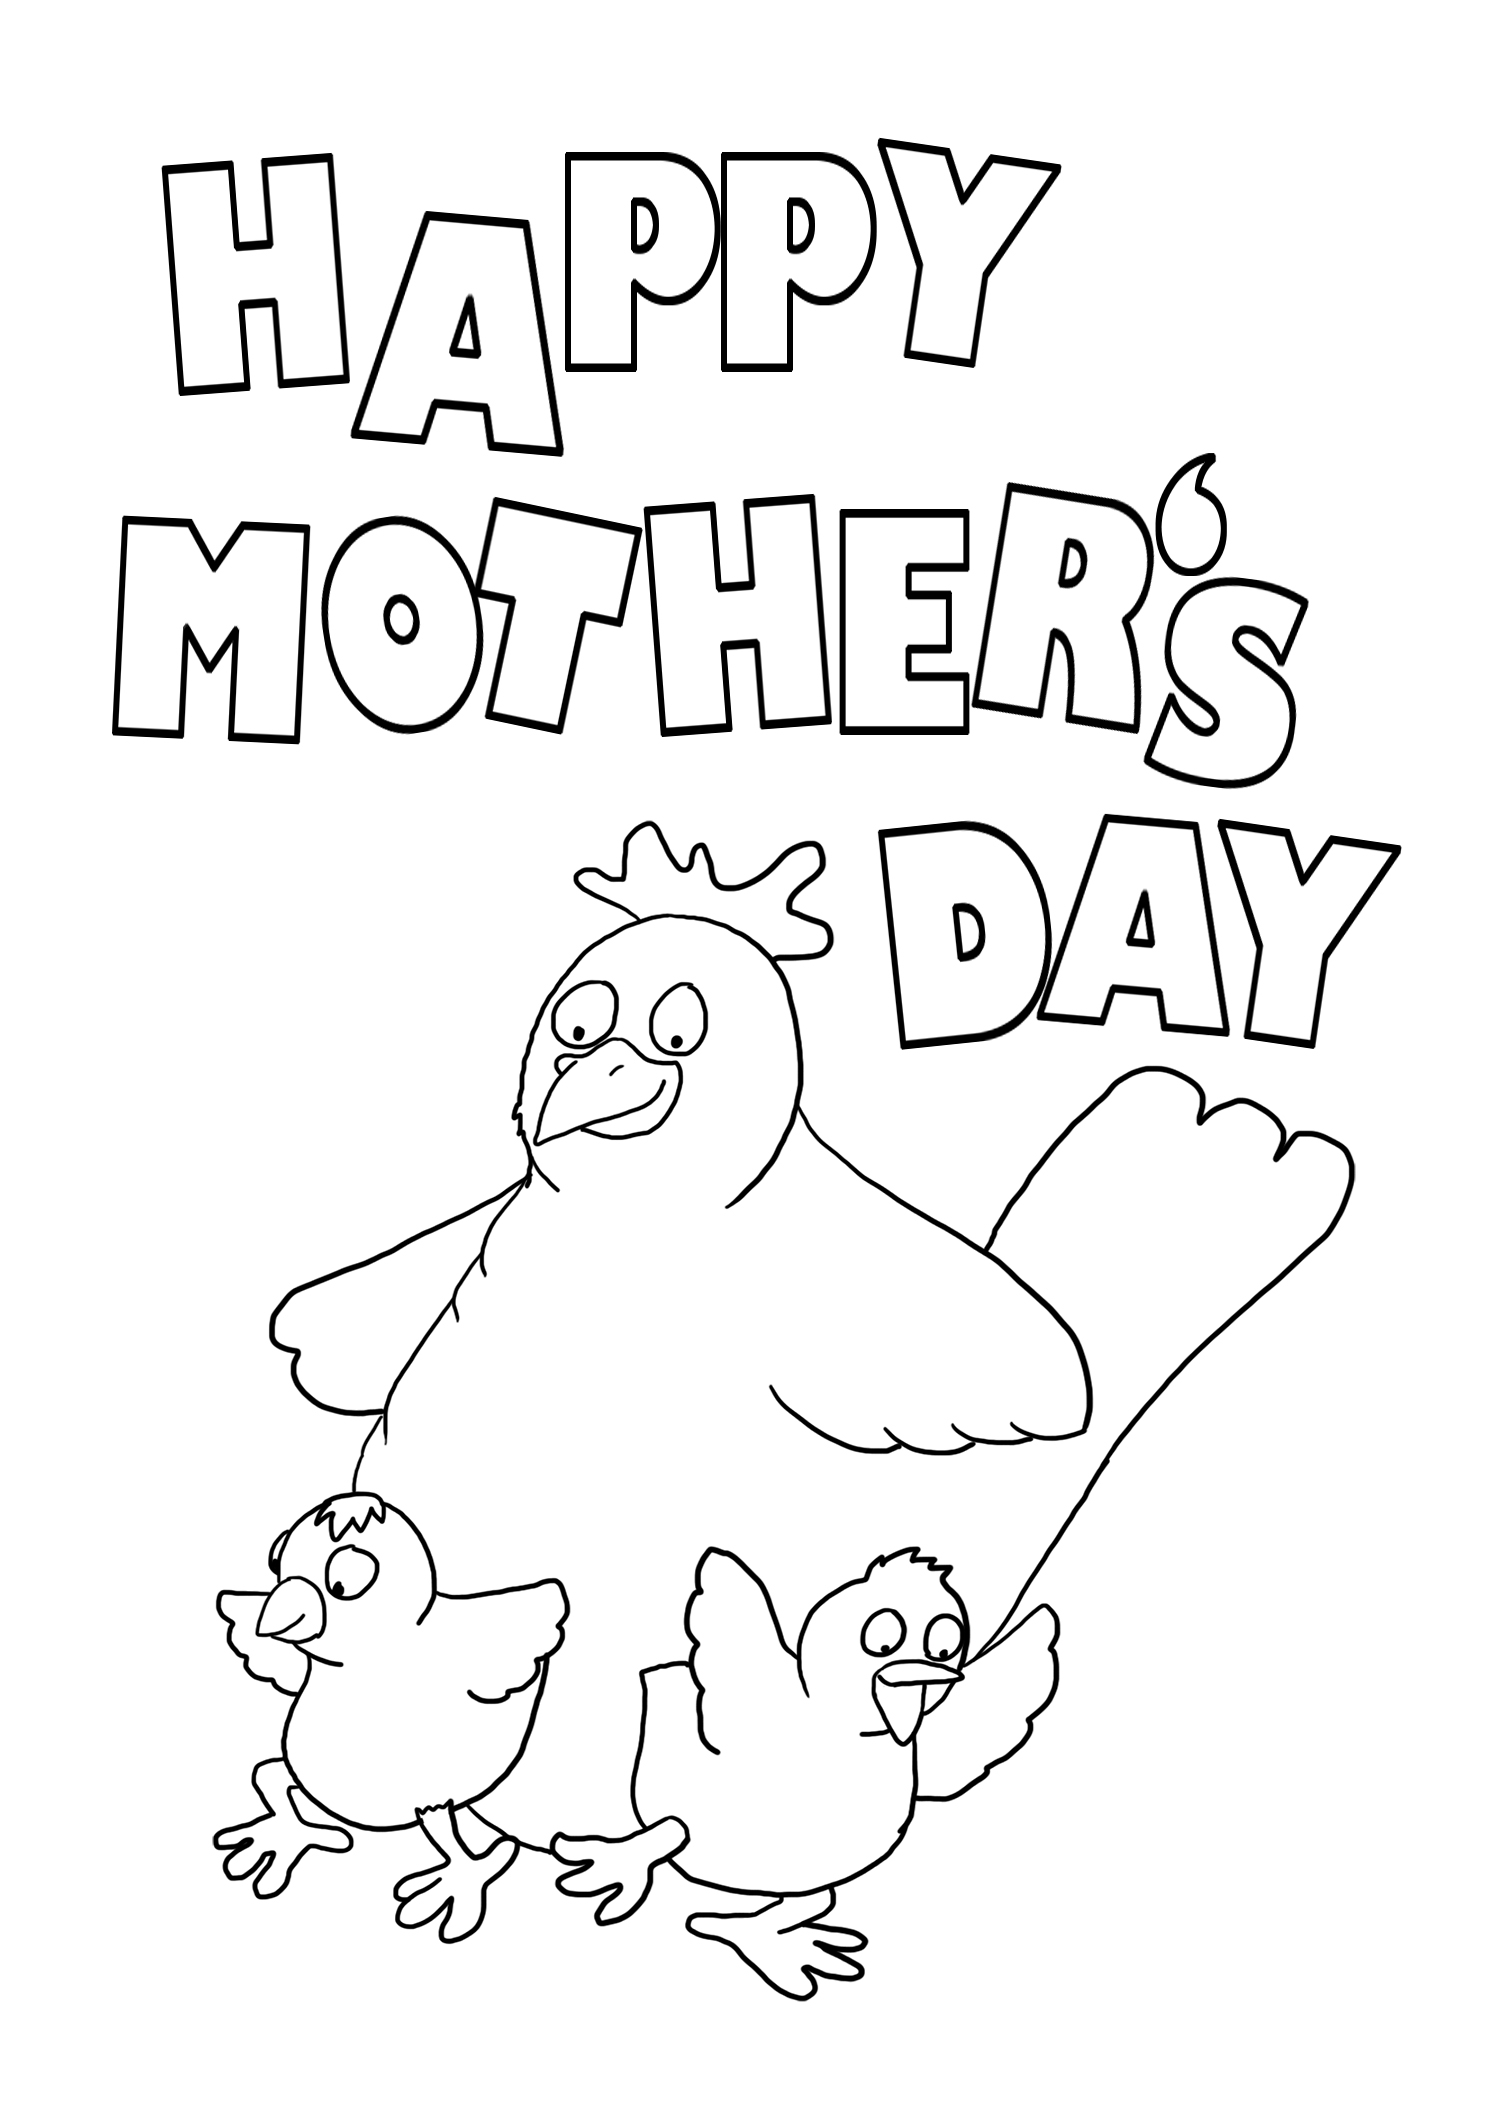 Mother's day coloring page with hen and chicken